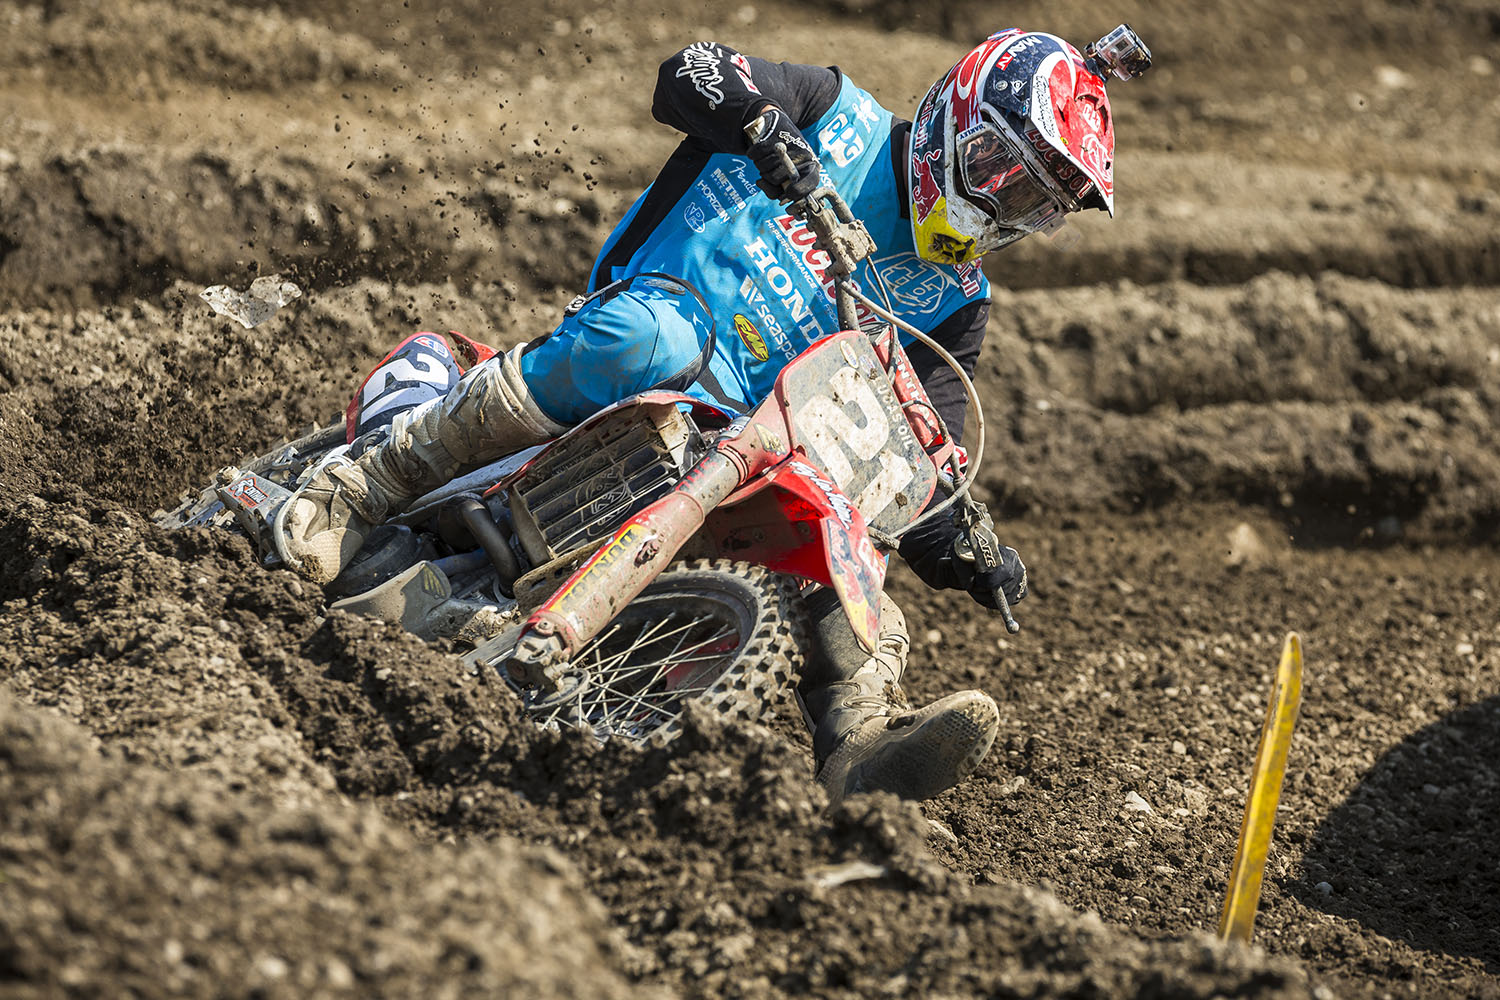 Cole Seely competes in the AMA Pro Motocross Championships at Unadilla Valley Sports Center in New Berlin, New York on August 9th, 2014.